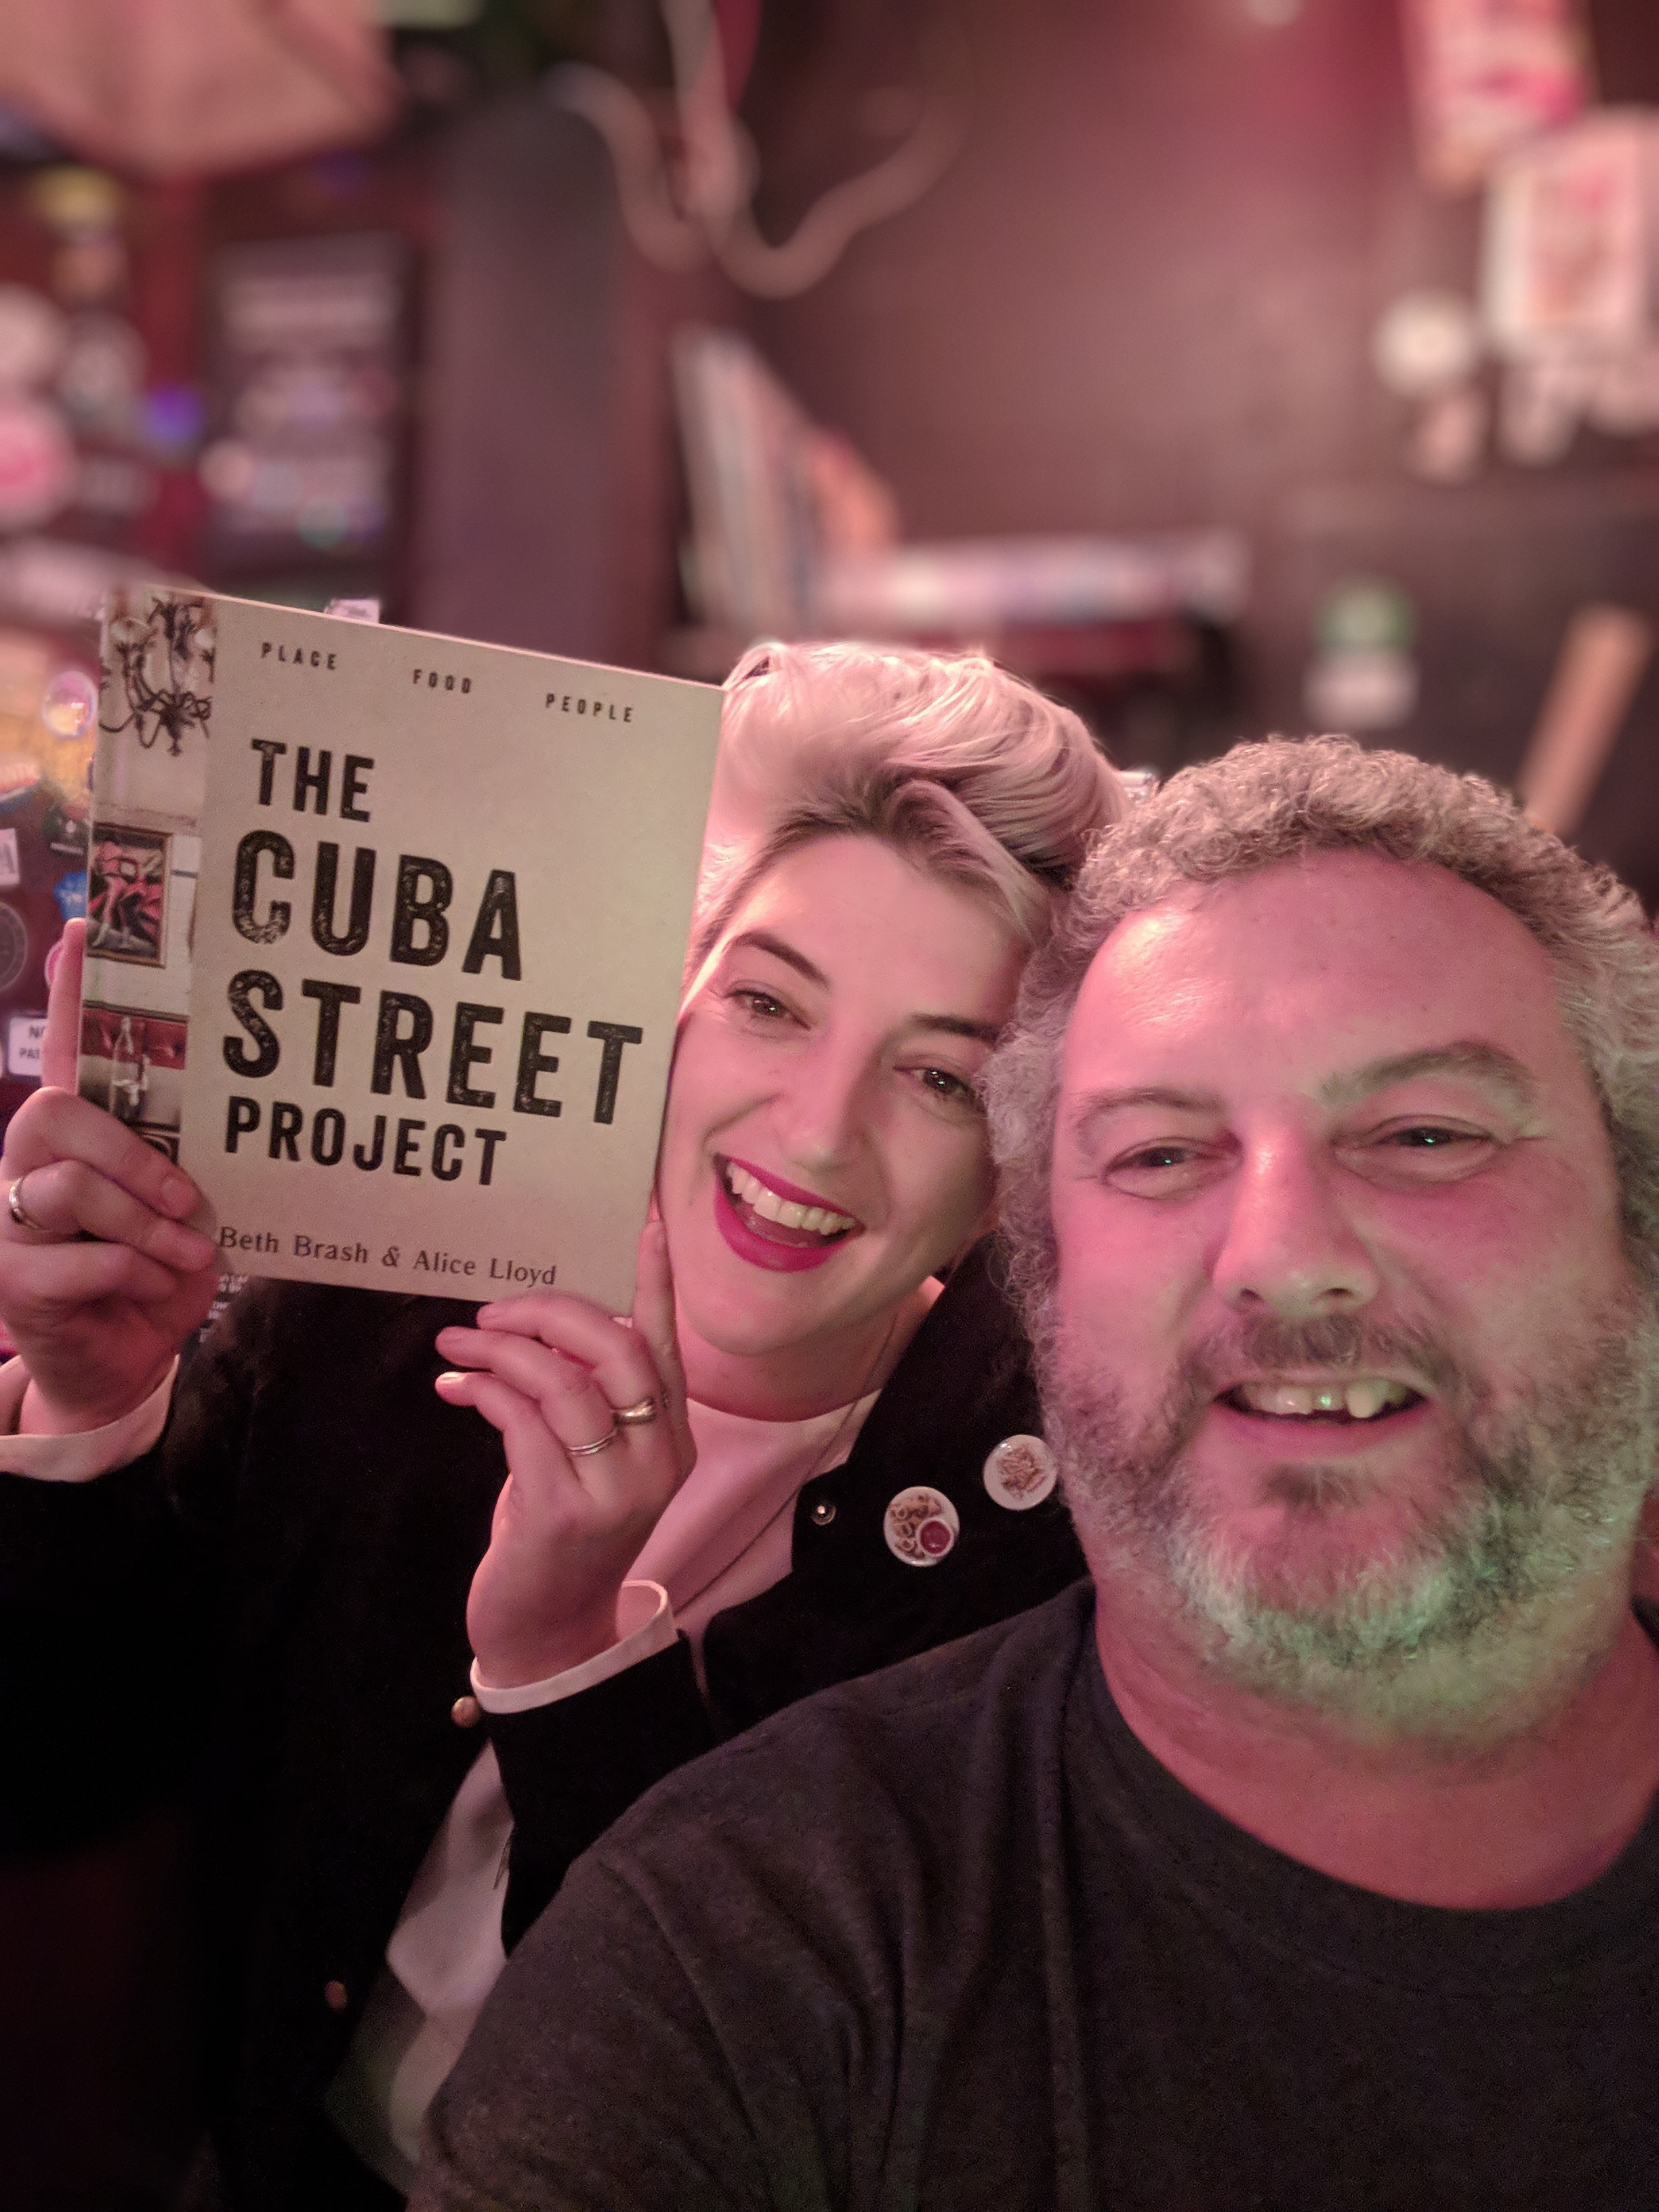 Beth Brash with her 'The Cuba Street Project' book